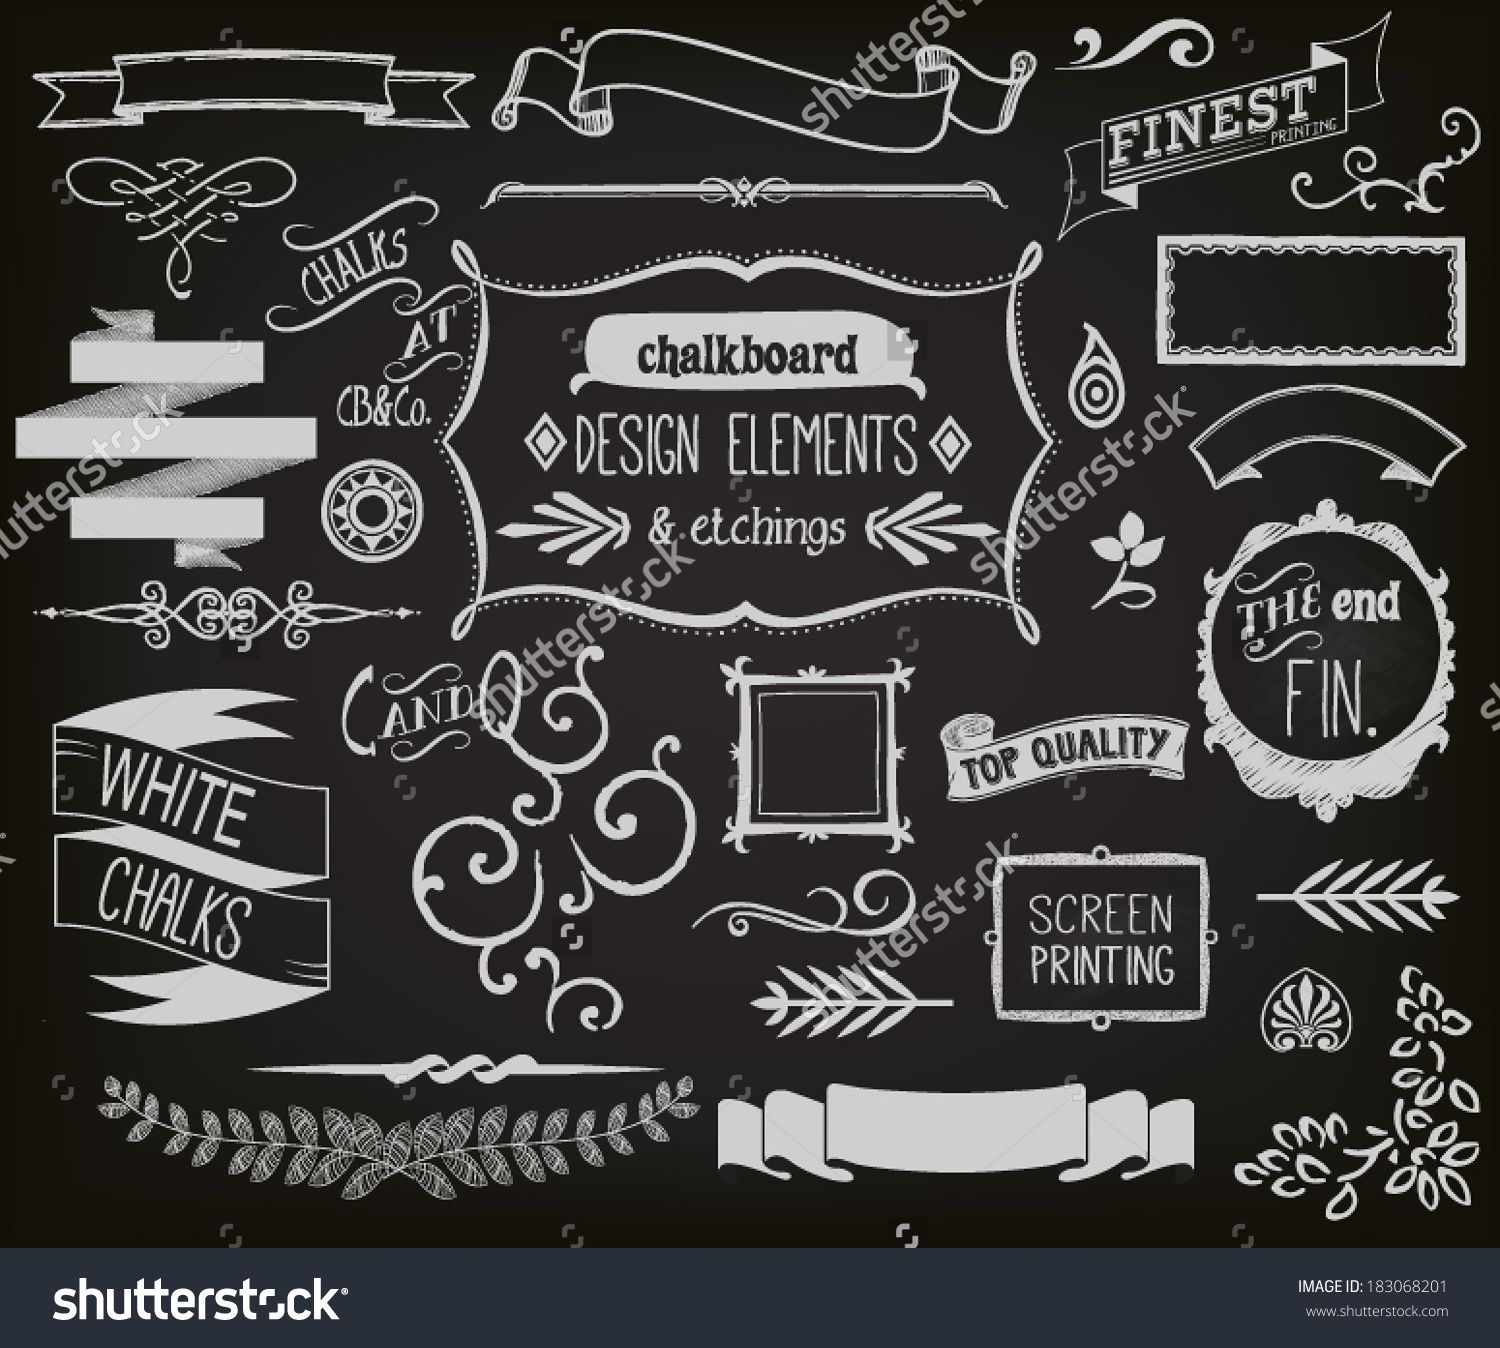 Chalkboard Designs Chalkboard Design Elements And Etchings Blackboard Clip Art